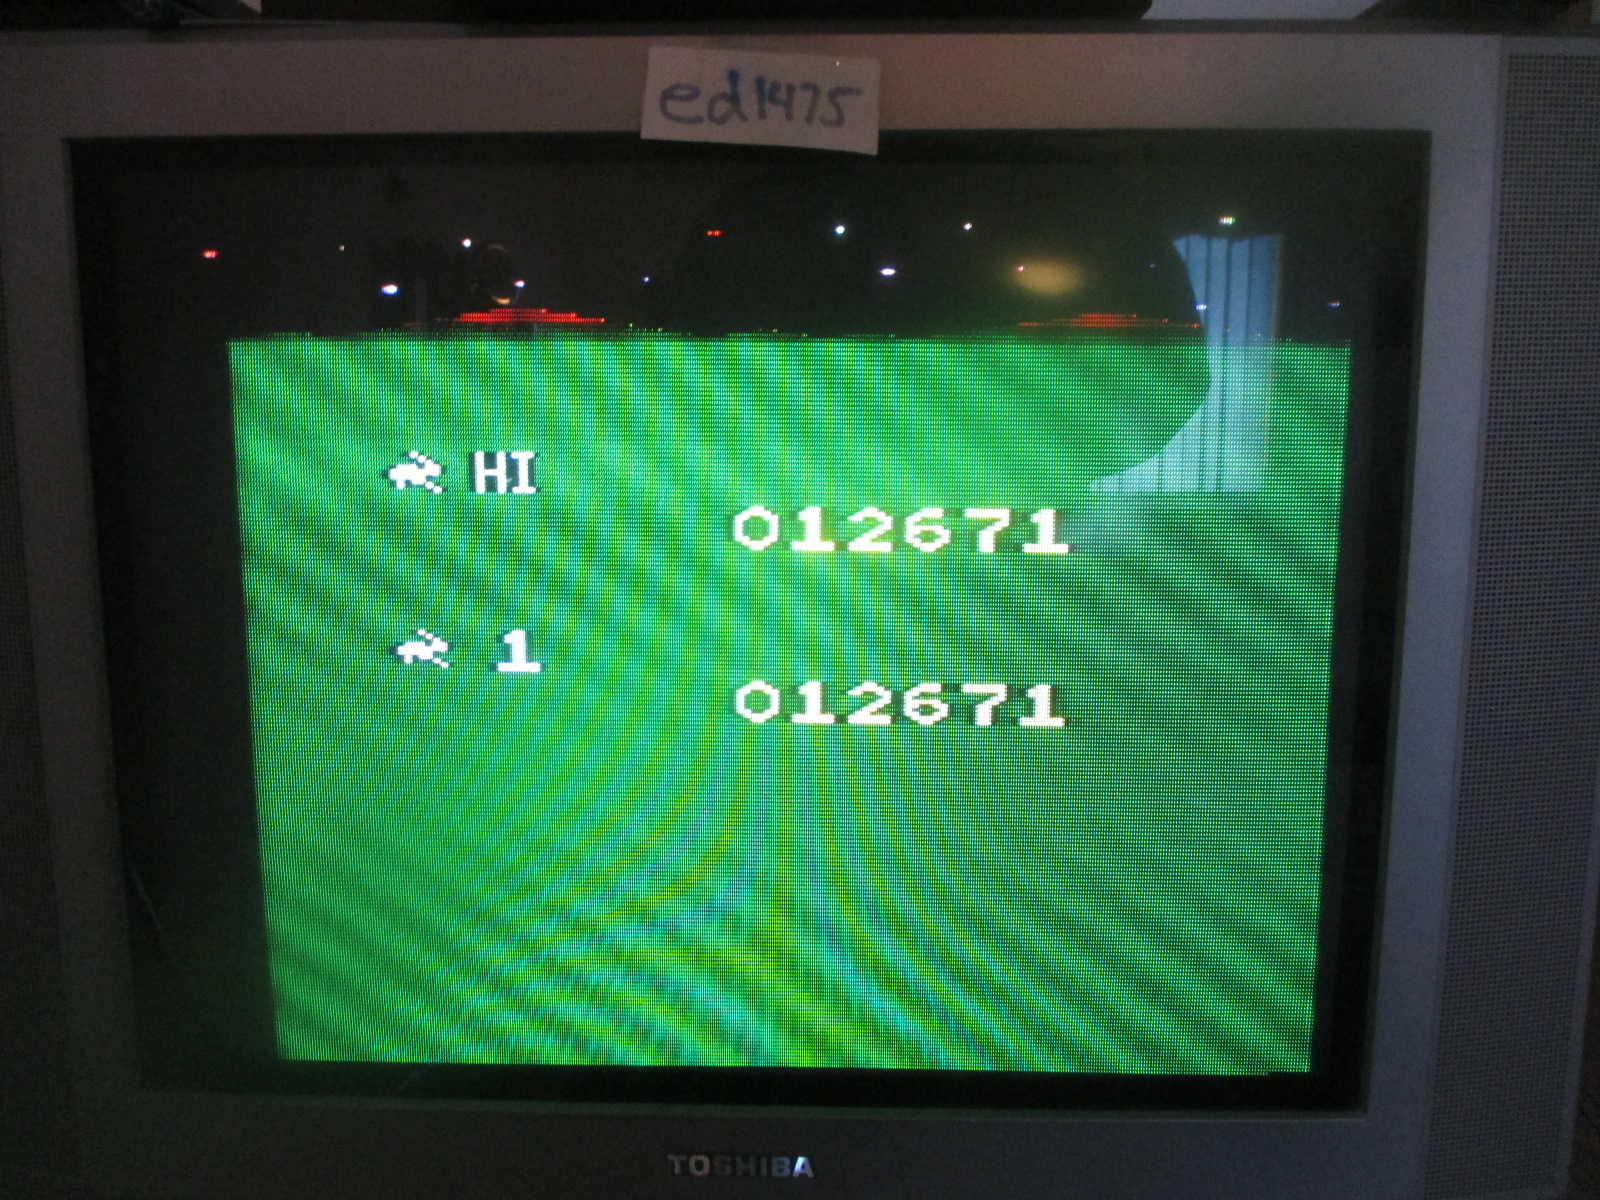 ed1475: Rabbit Transit (Atari 2600 Novice/B) 12,671 points on 2014-11-24 19:37:23